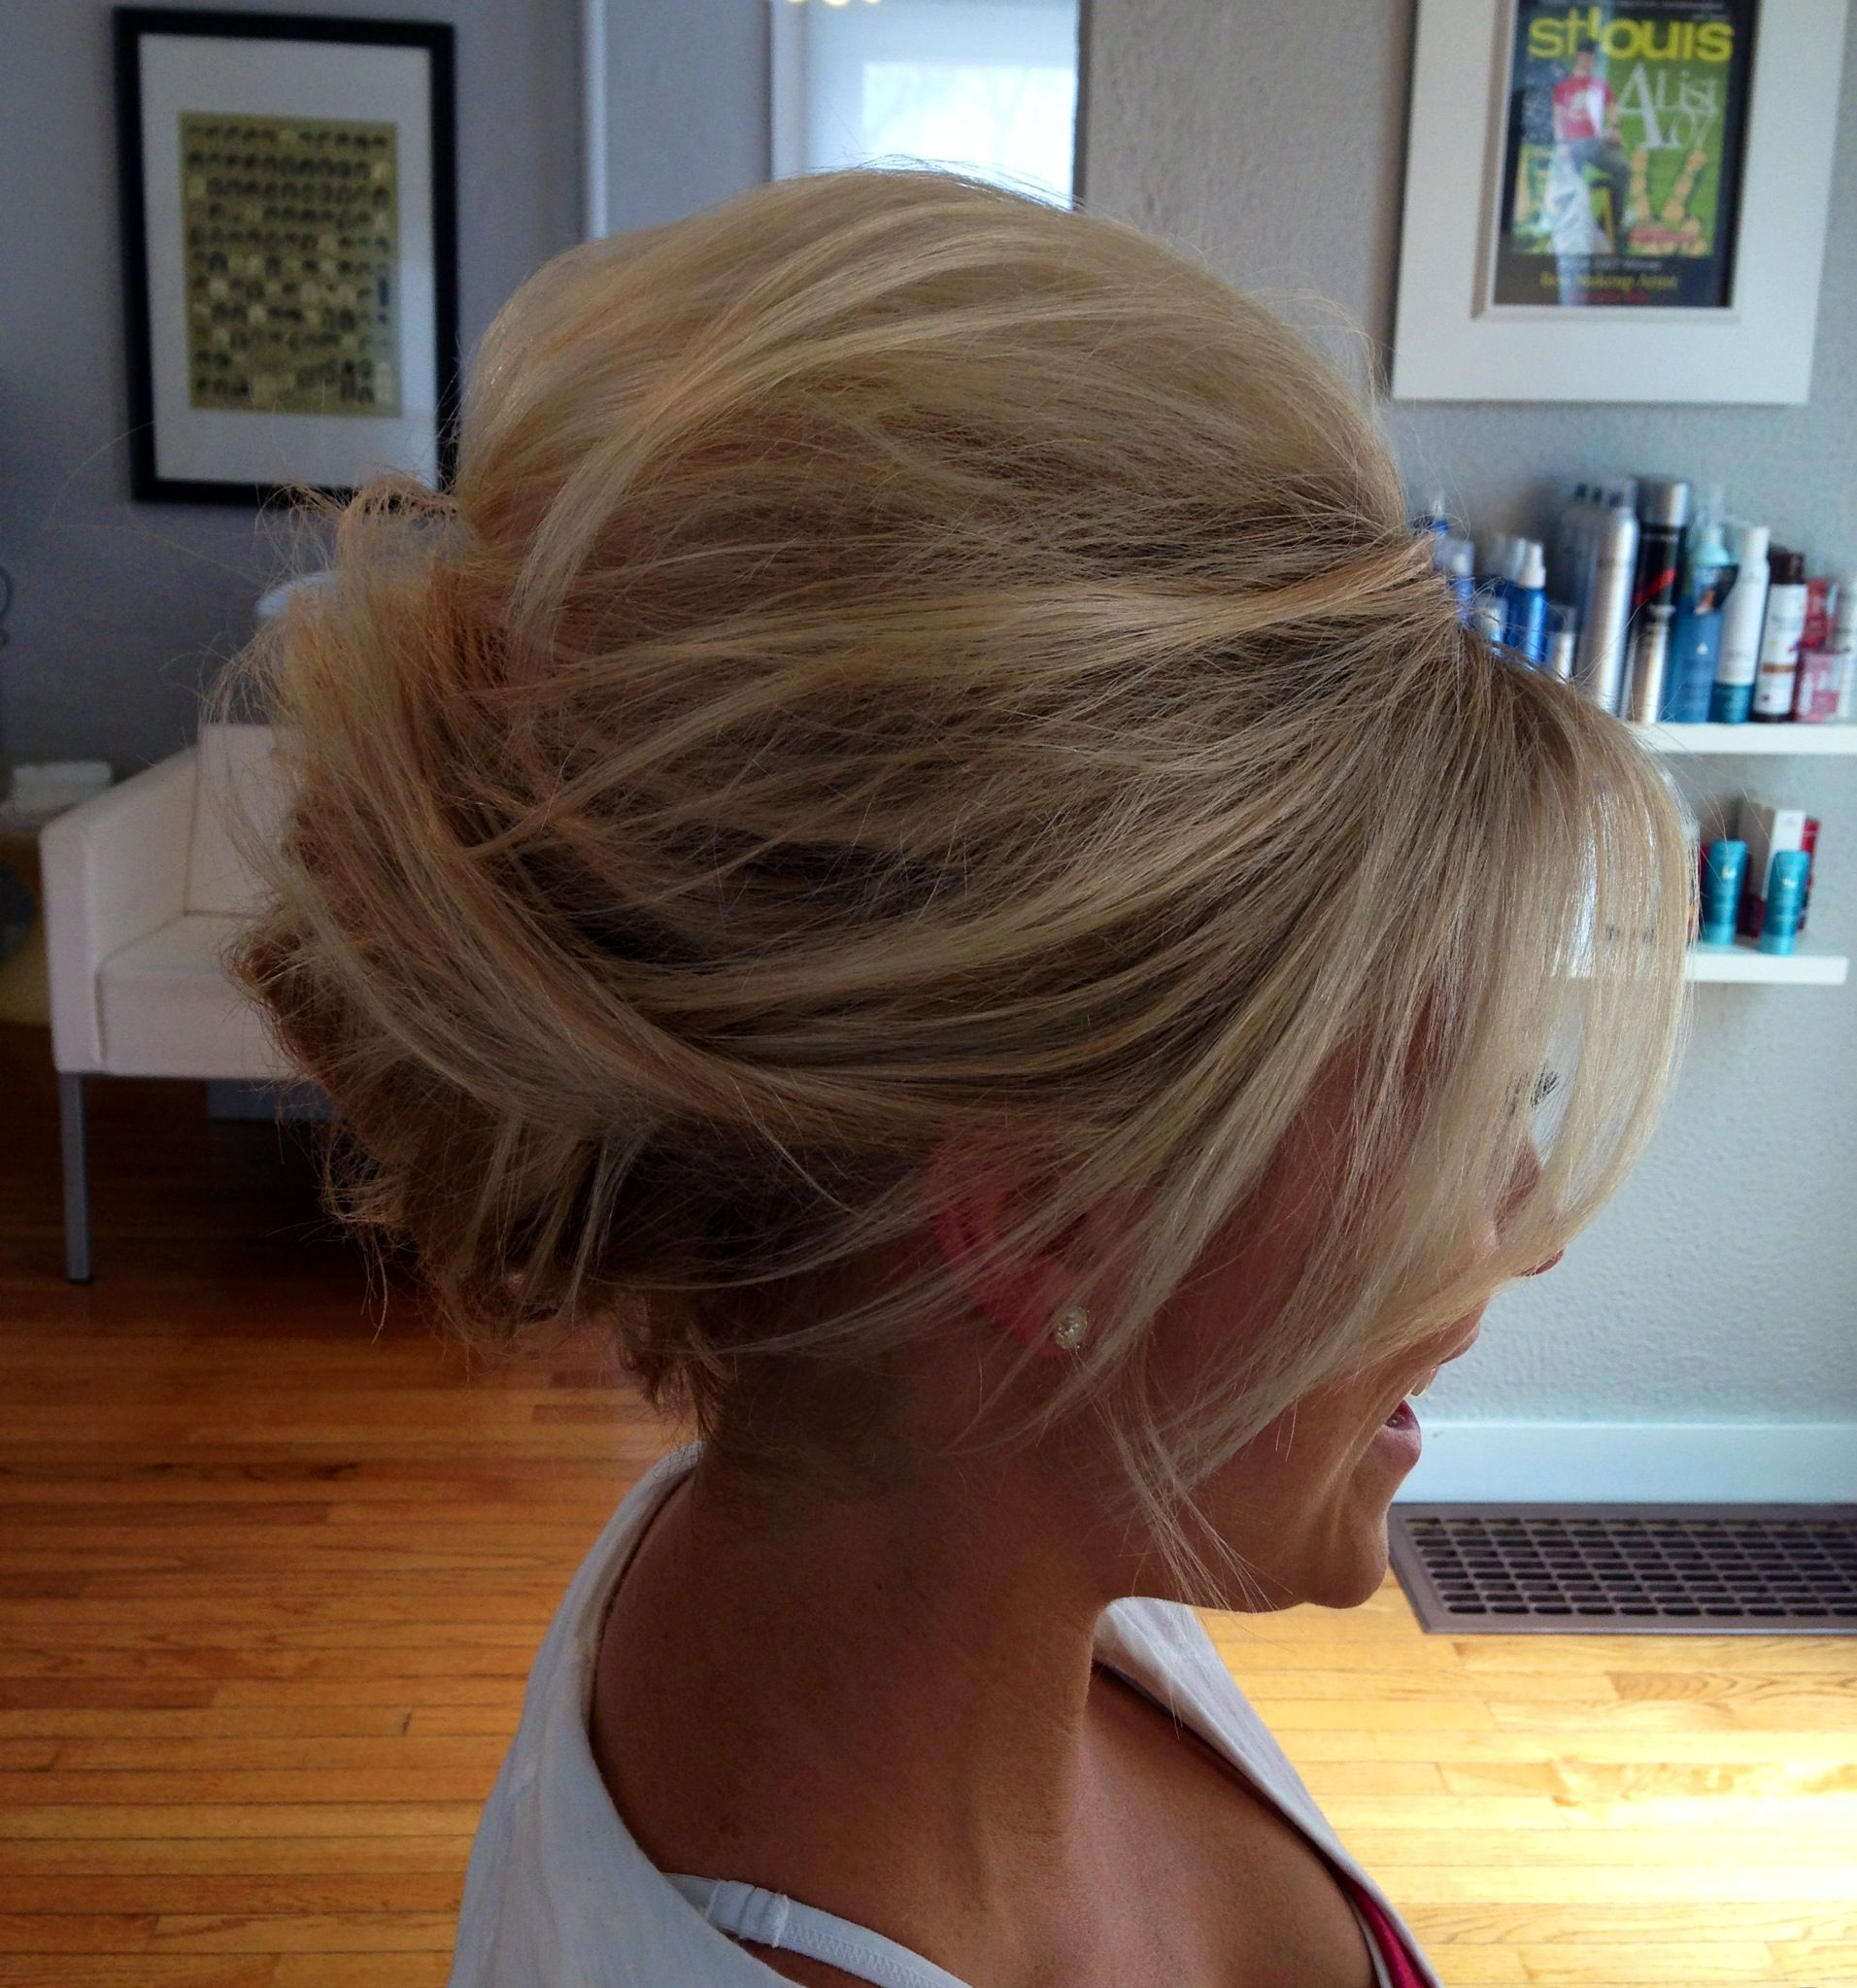 Beehive Style Wedding Hair: Textured Bee Hive